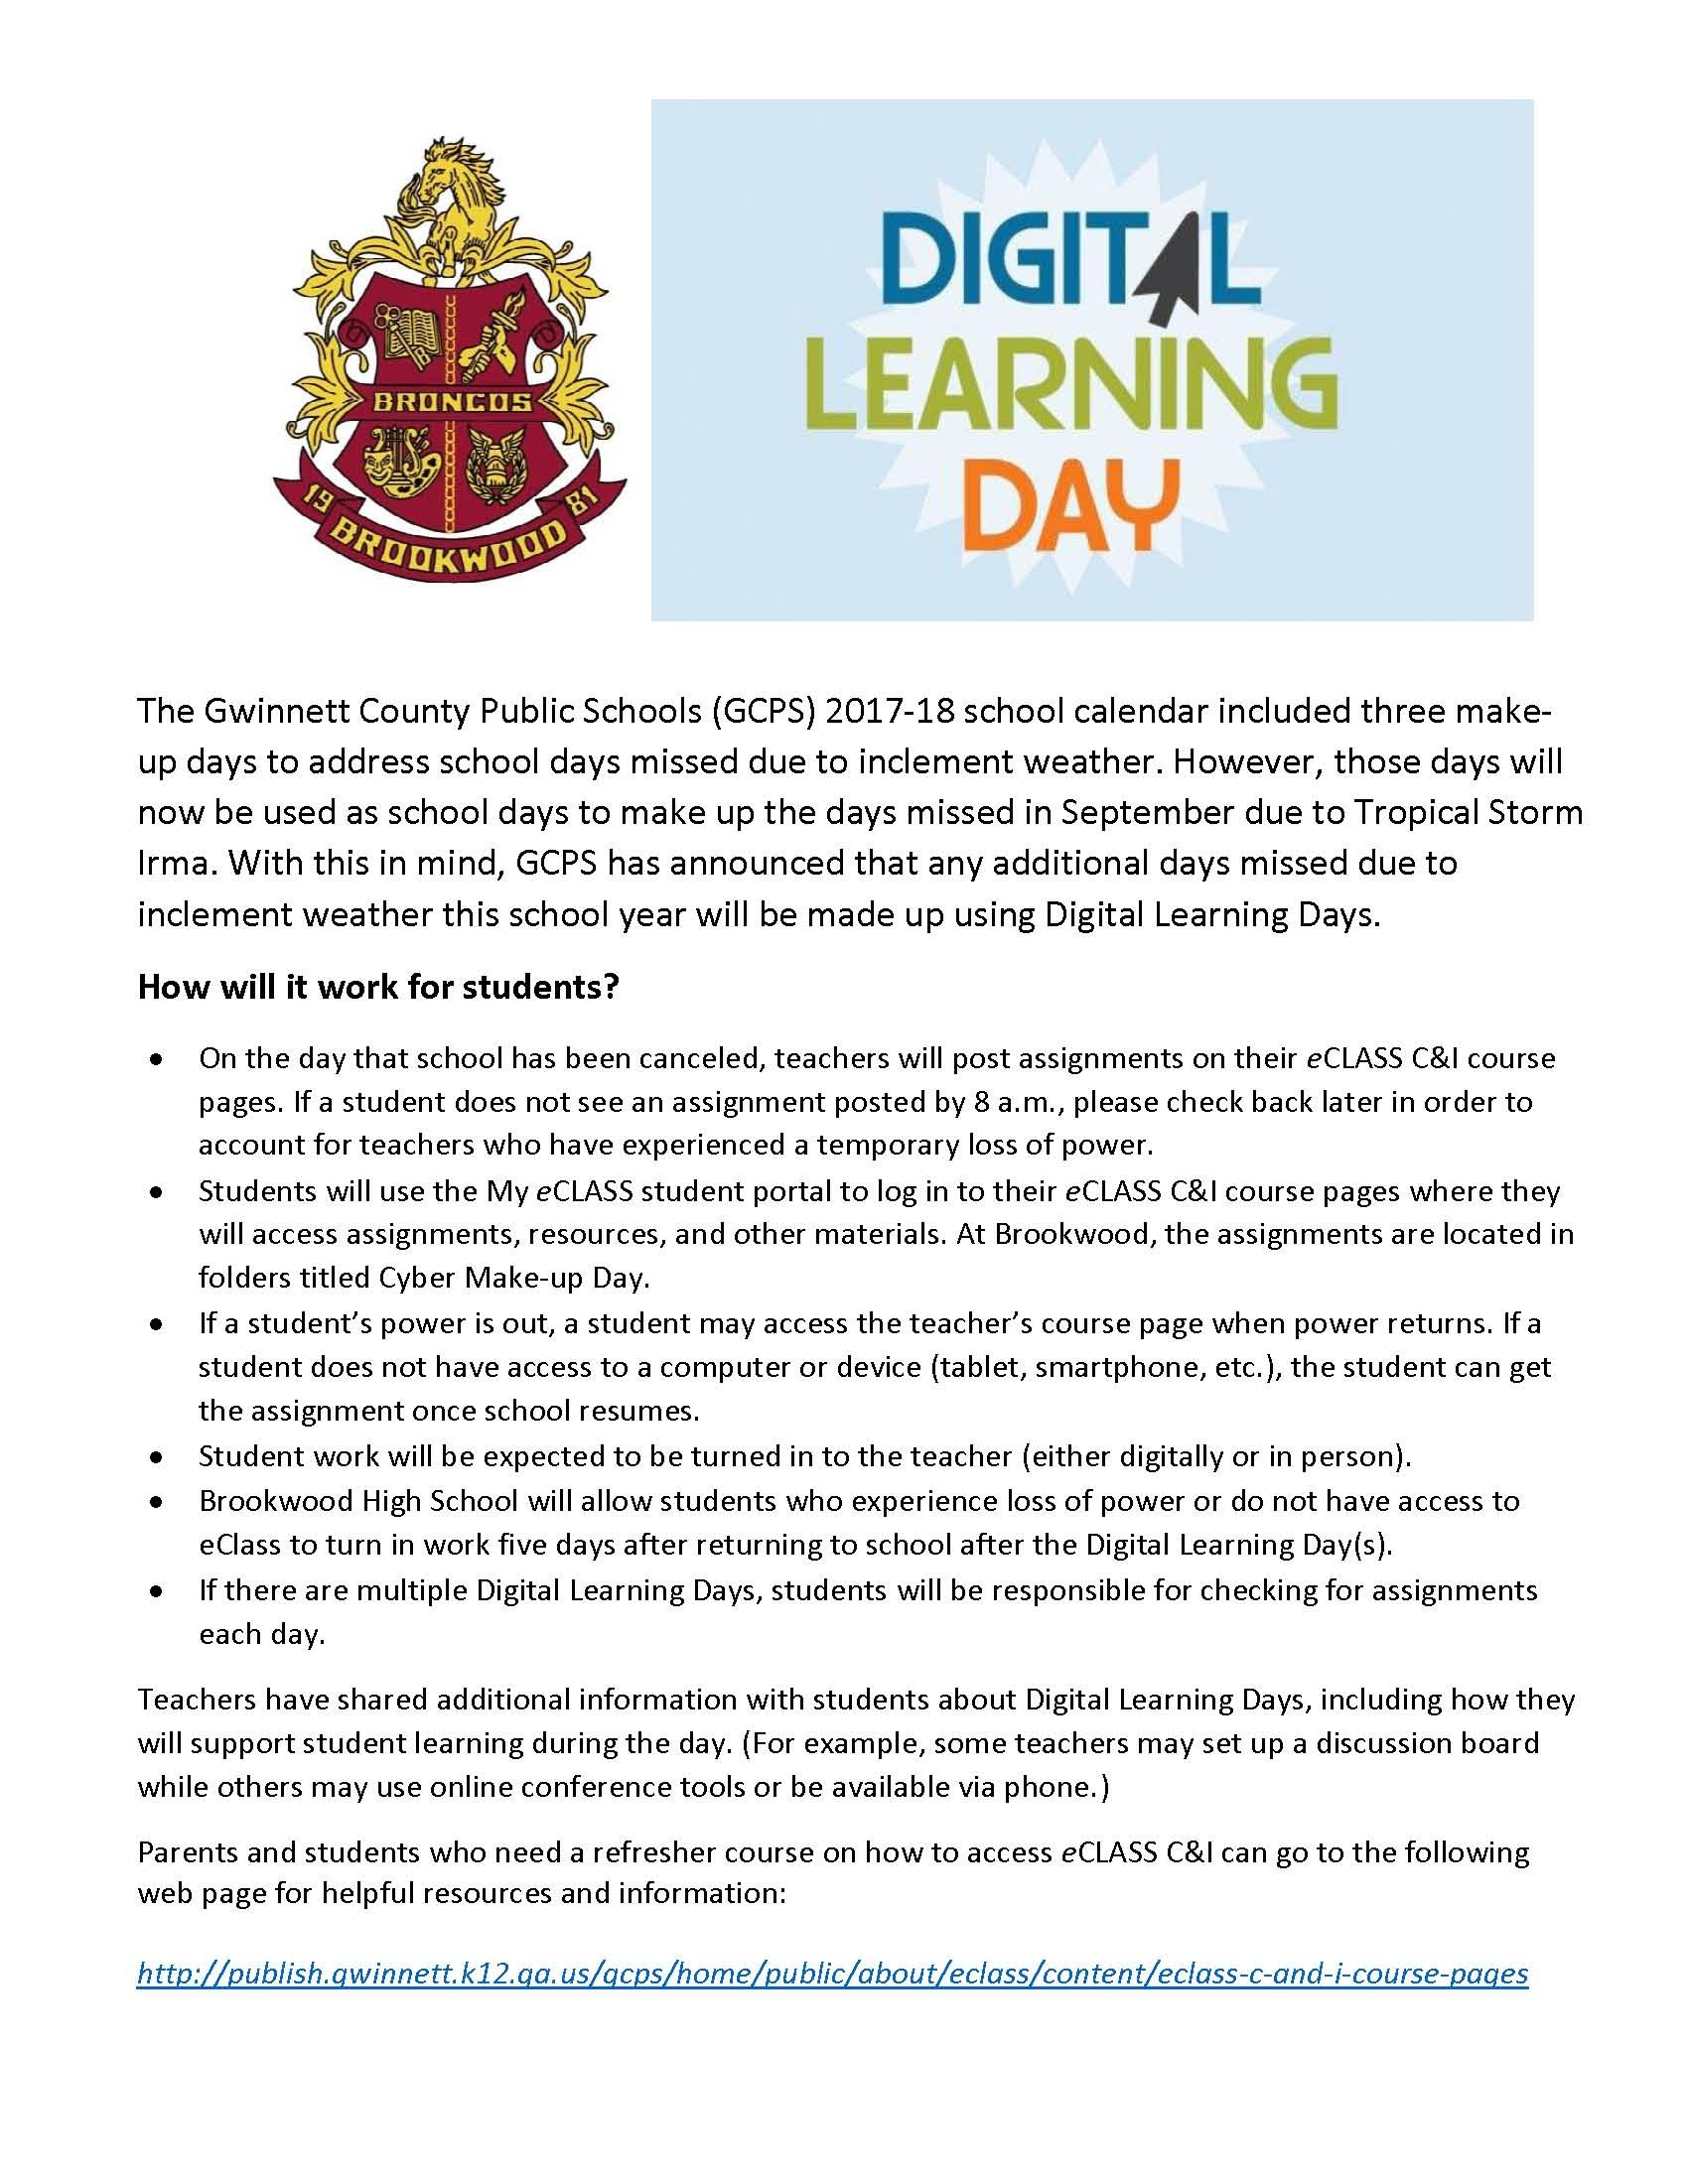 Digital Learning Day - Flyer for Parents and Students.jpg